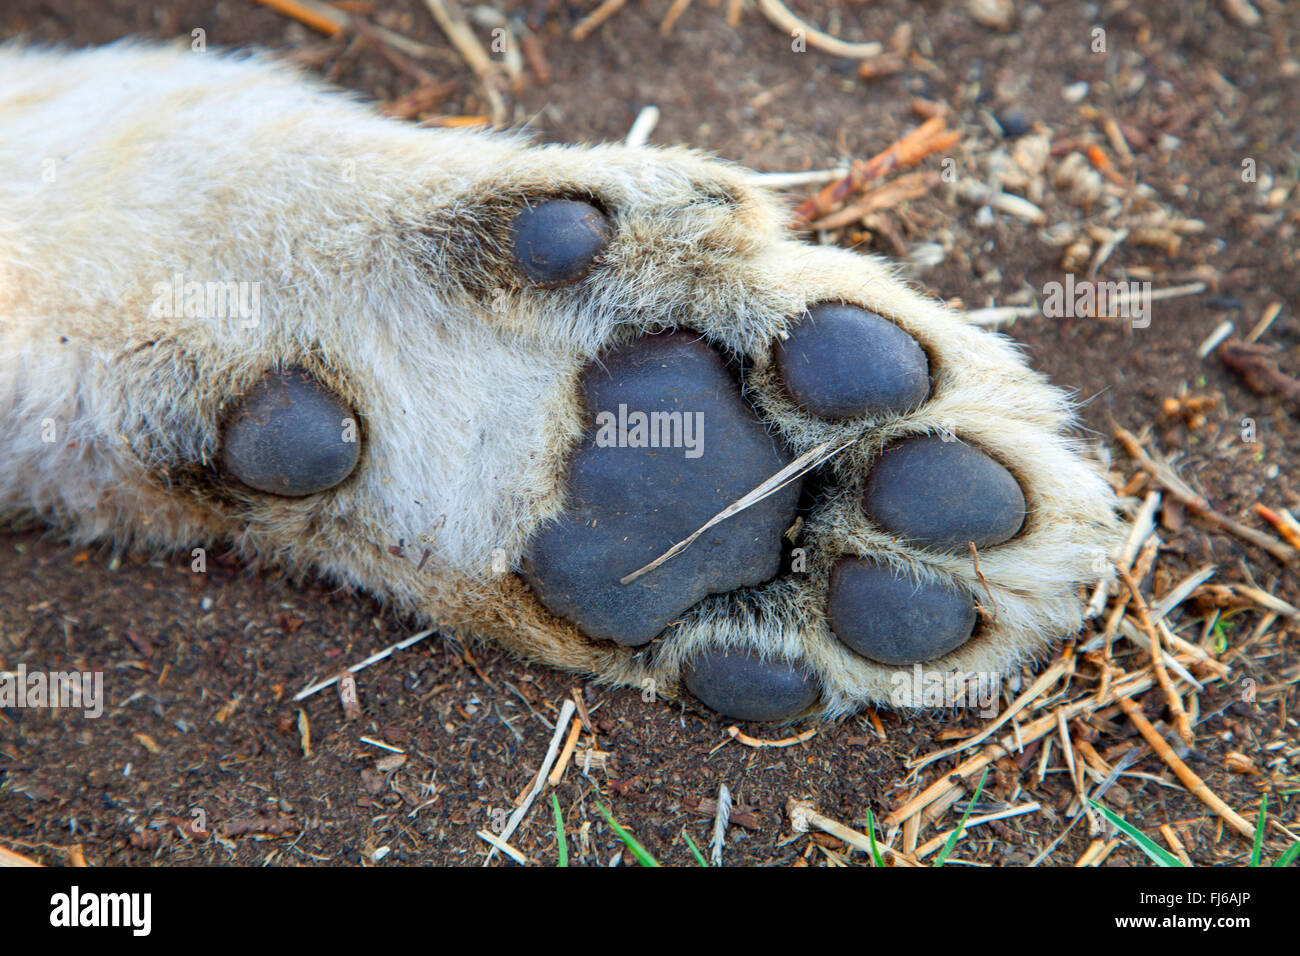 lion (Panthera leo), lion cub, bottom of a lion foot, South Africa - Stock Image